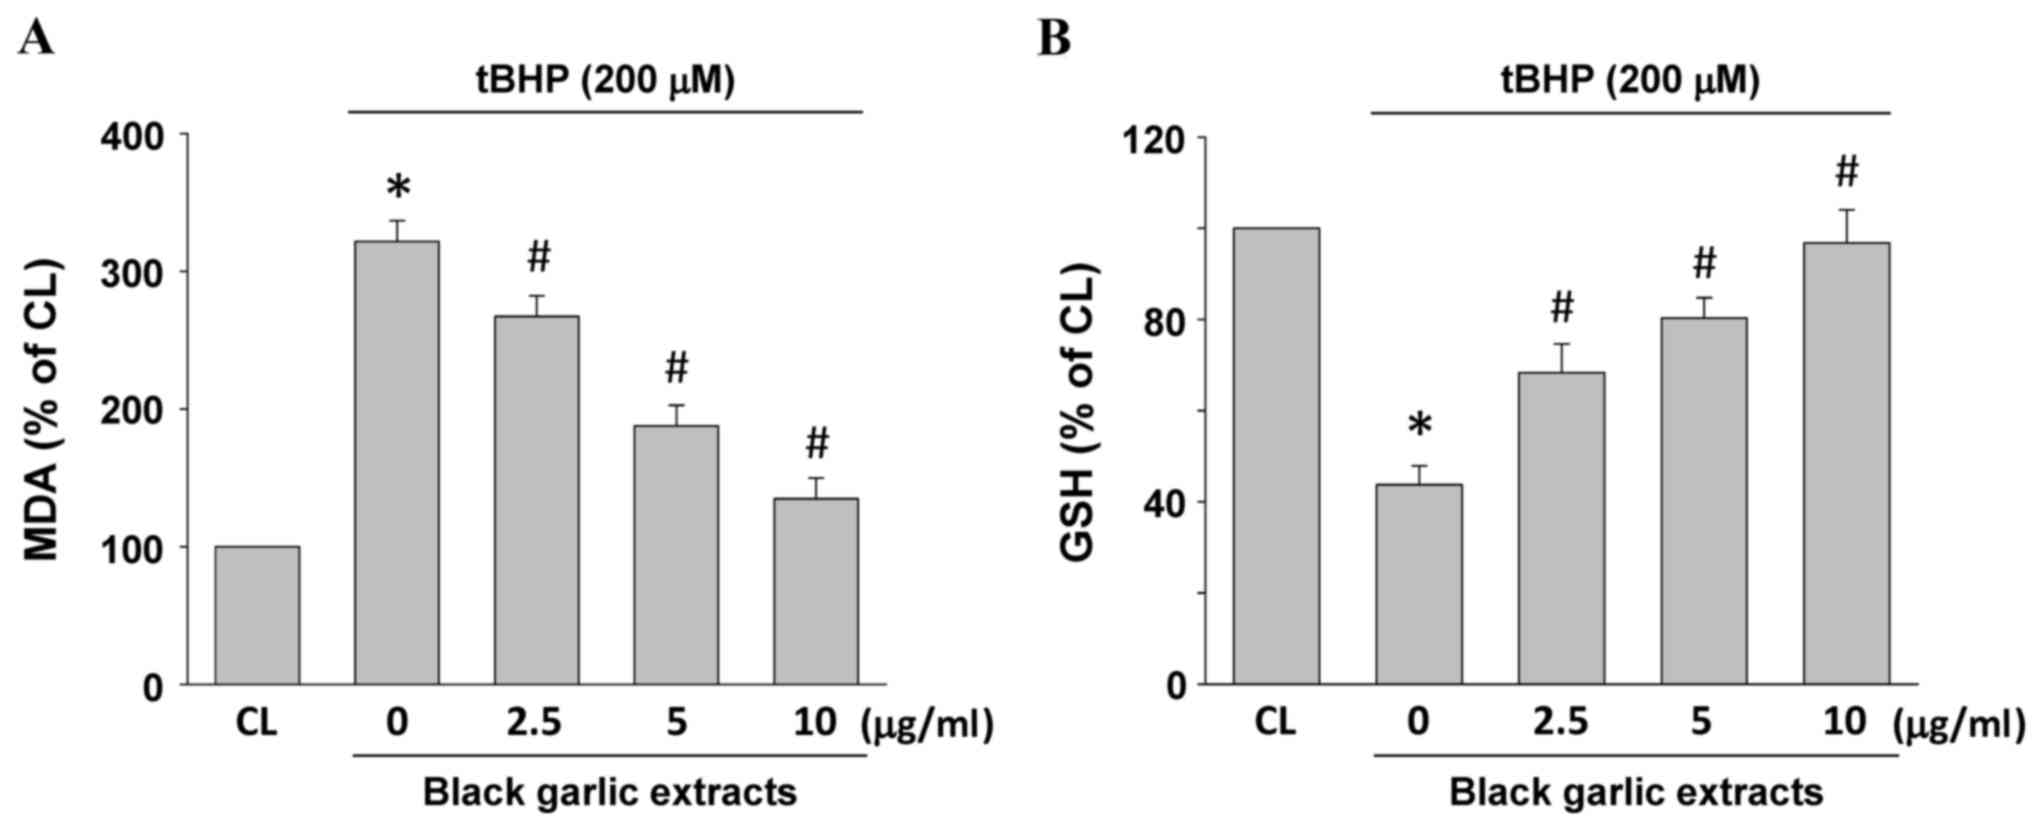 etm 15 03 2468 g01 protective effect of black garlic extracts on tert butyl